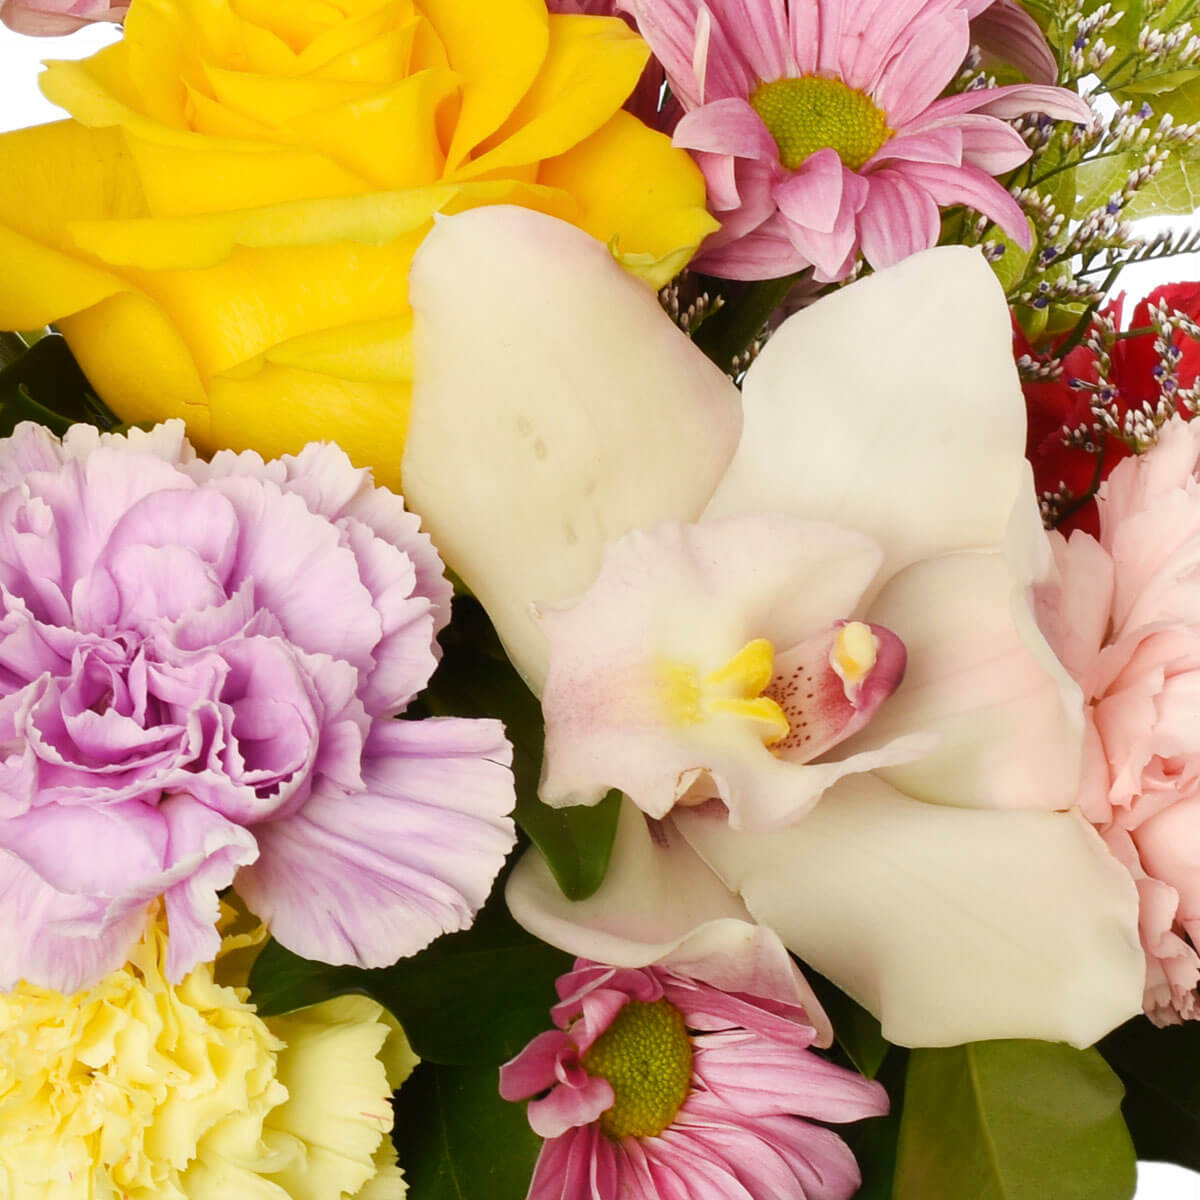 Canada Florist Burnaby BC   Flower Delivery for Mom   Adele Rae